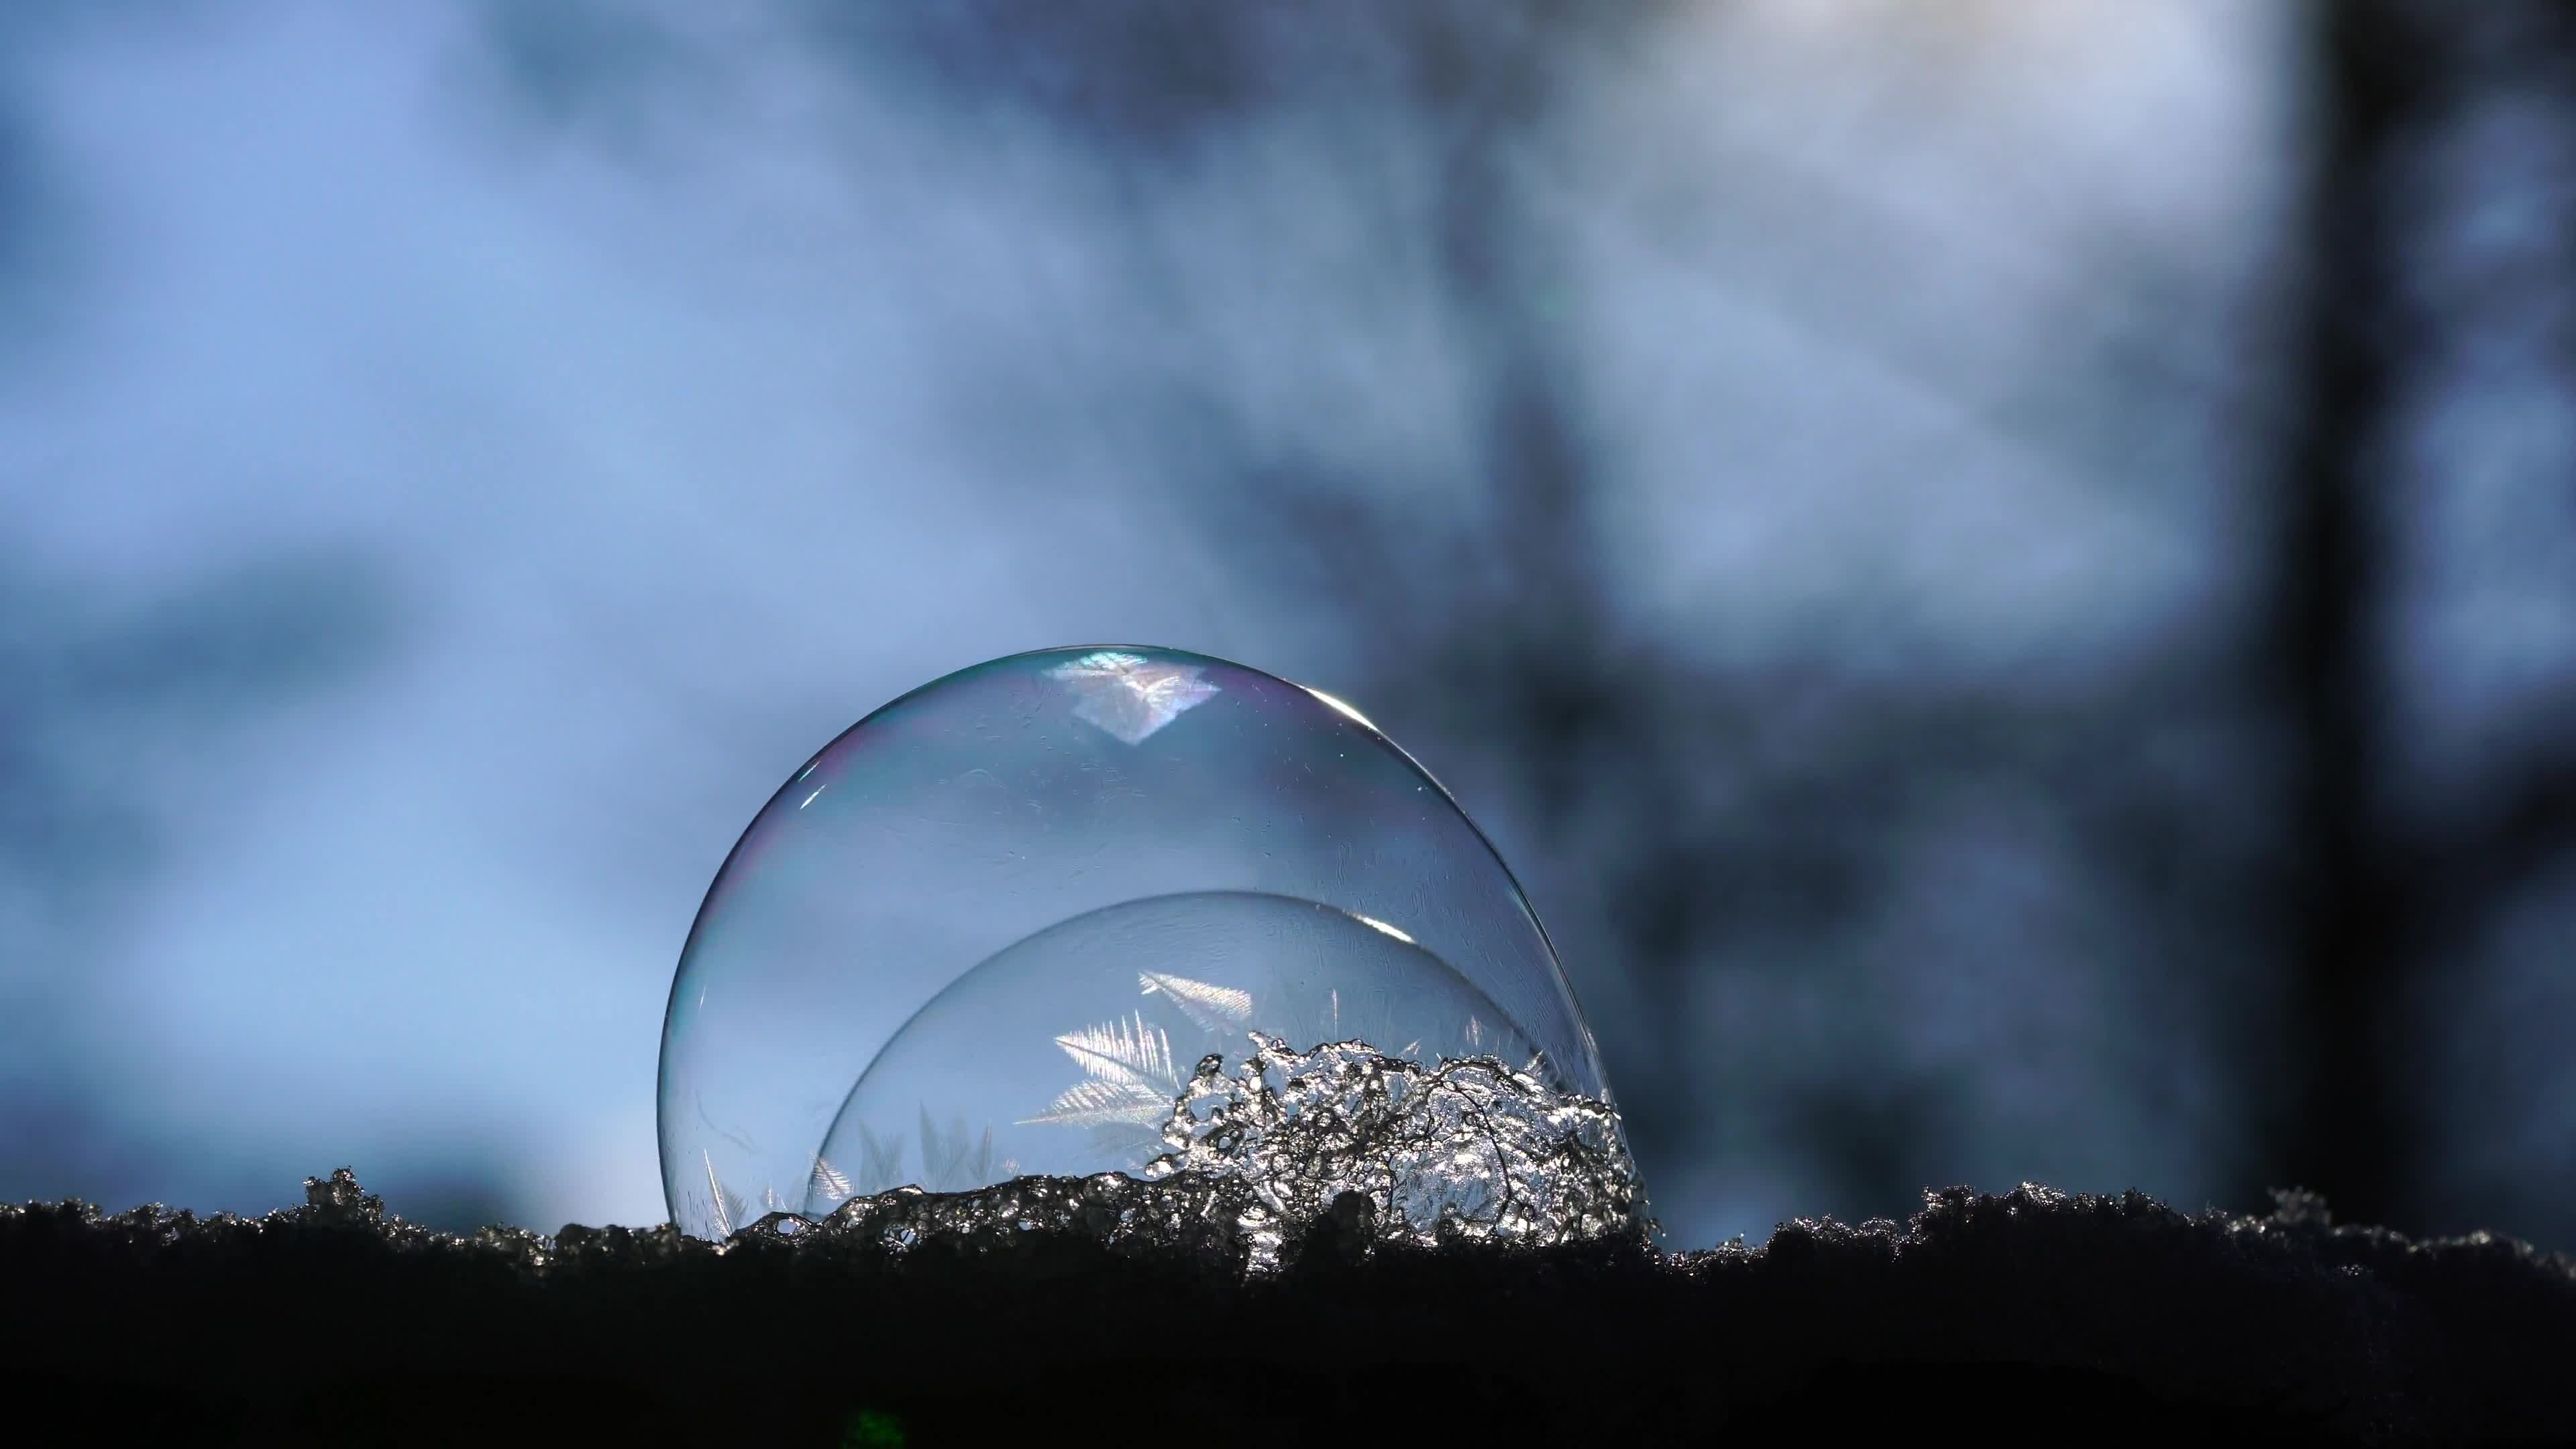 Video of water bubble crystallizing